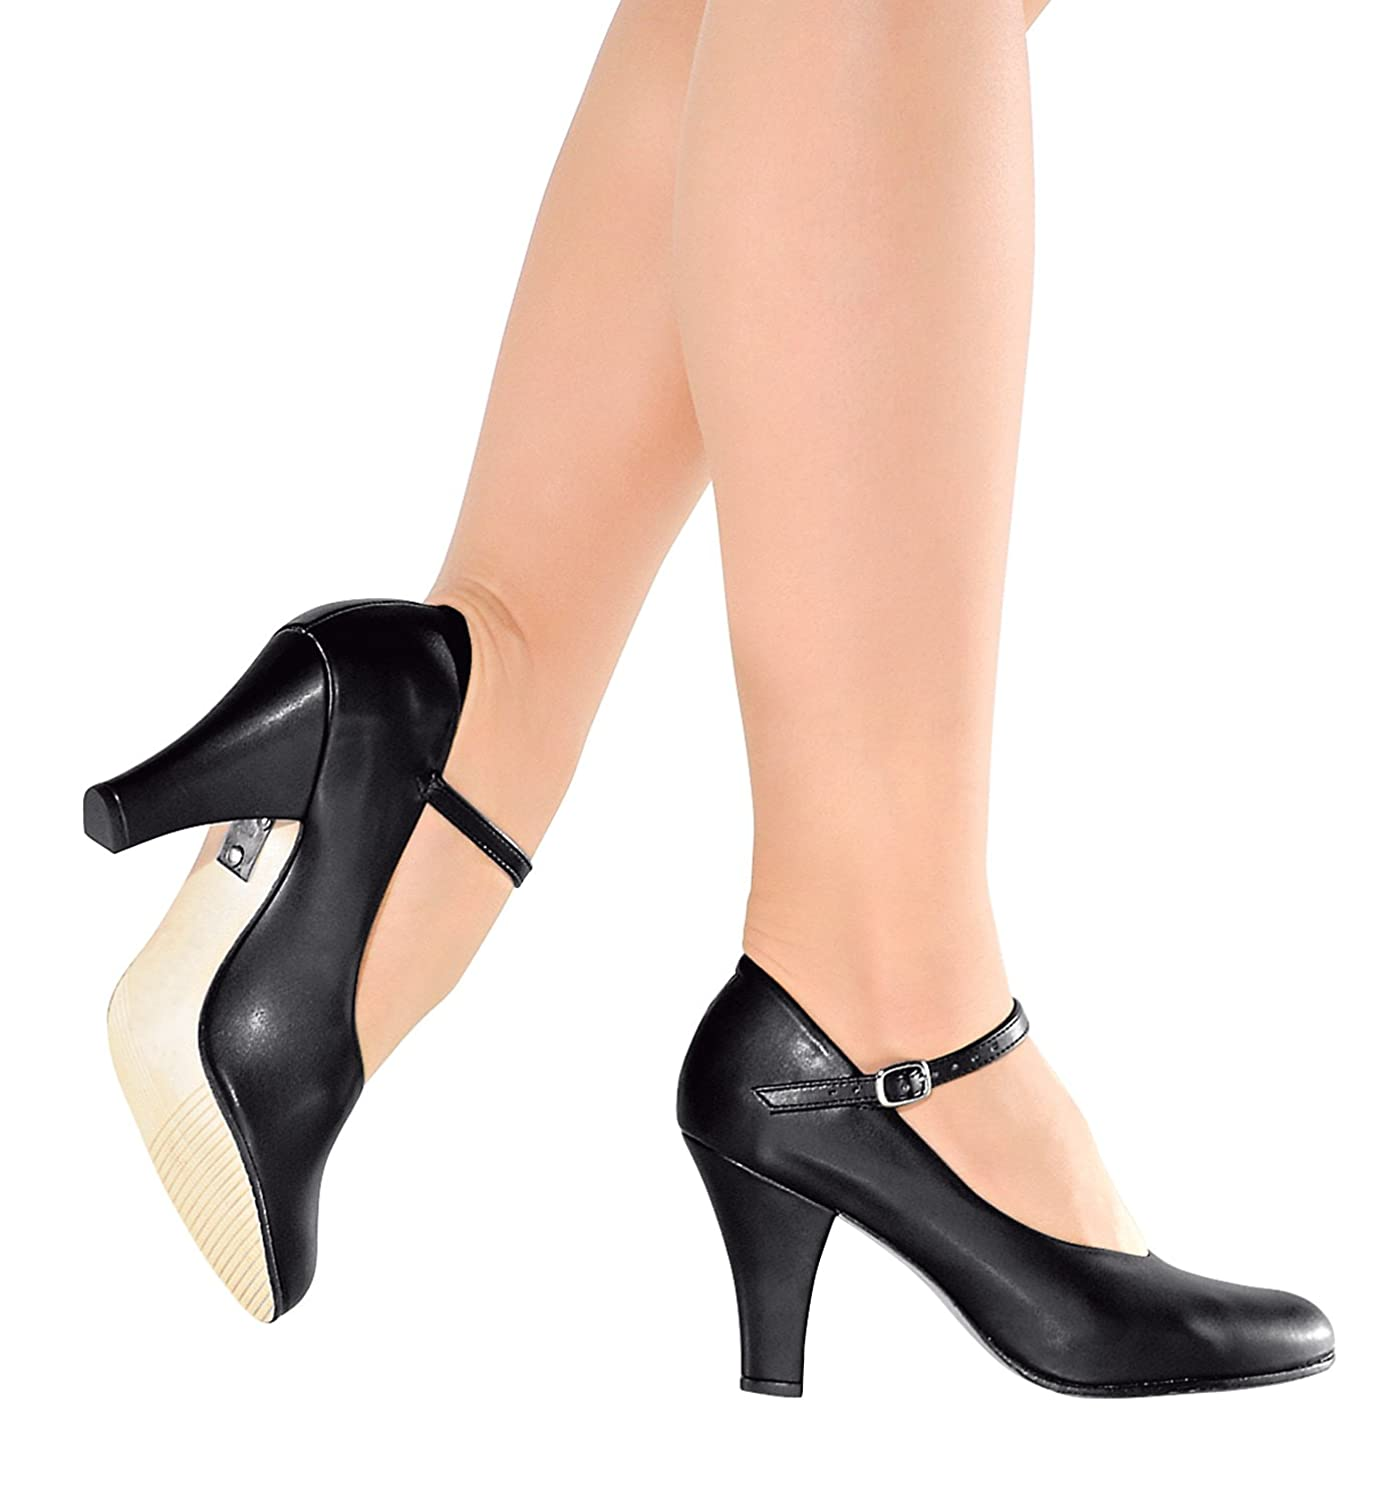 Swing Dance Shoes- Vintage, Lindy Hop, Tap, Ballroom Adult 3 Character ShoesCH53 $59.95 AT vintagedancer.com